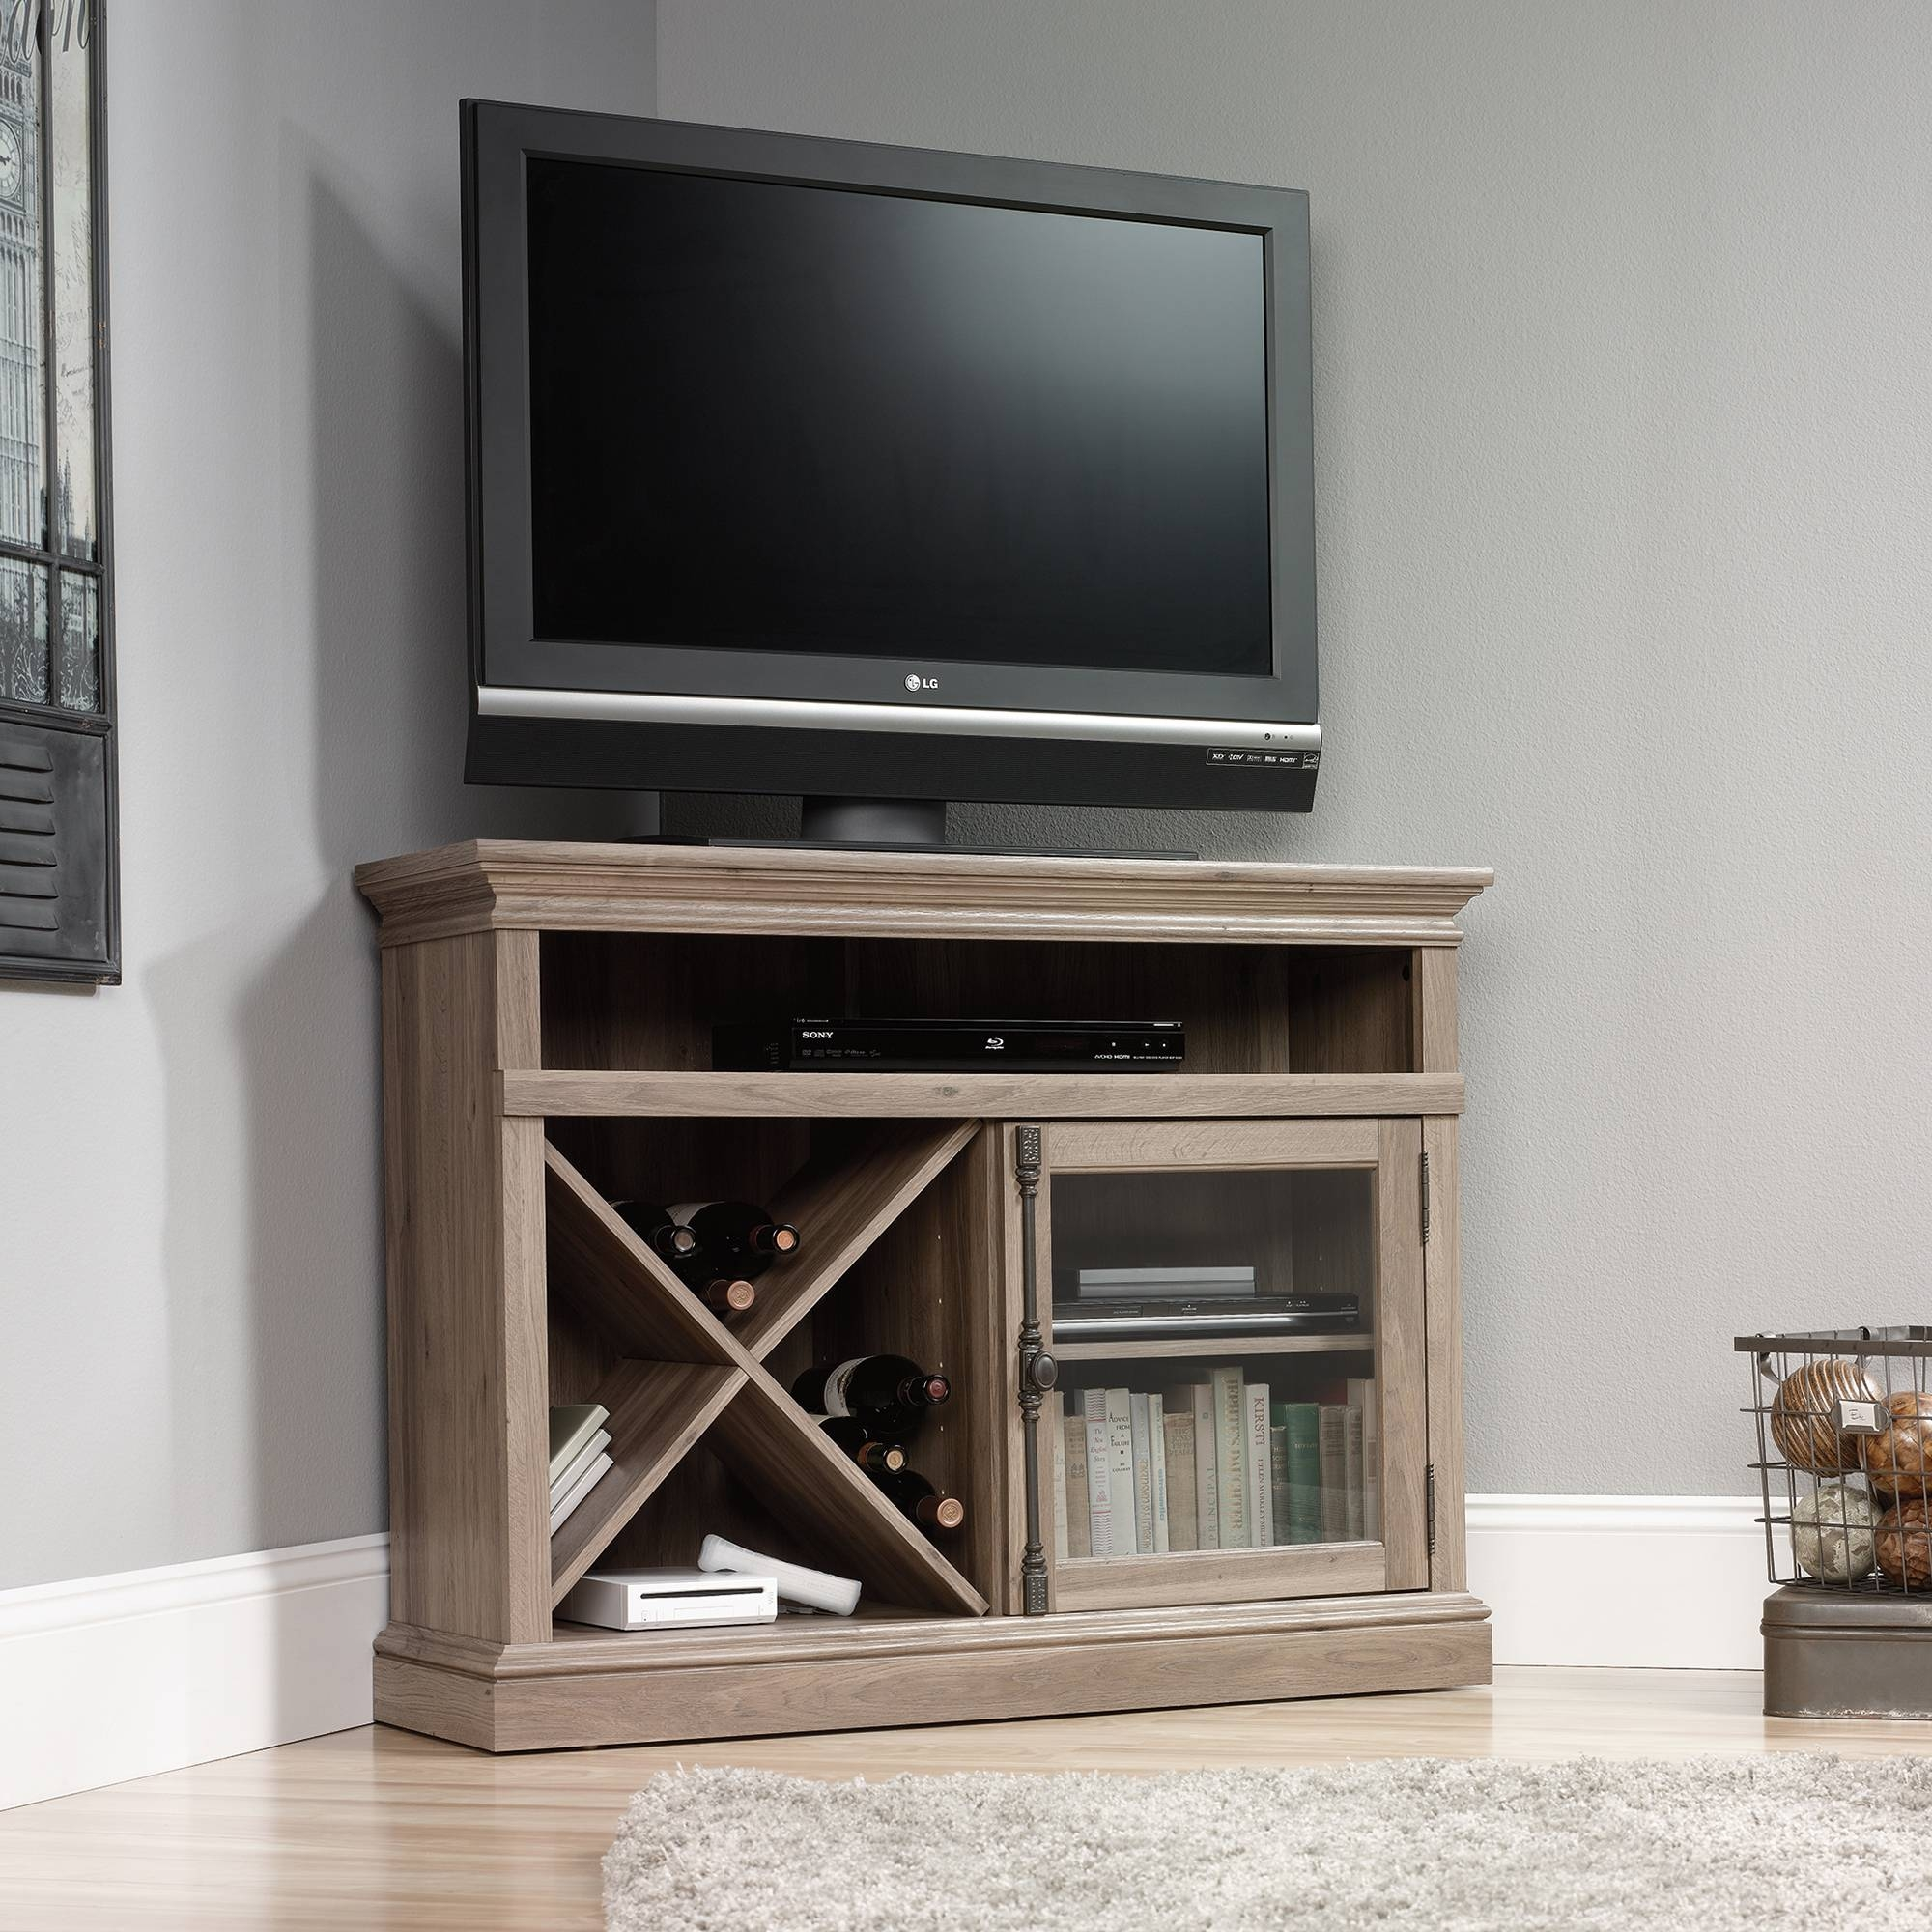 Wooden Corner Tv Stand With Single Glass Cabinet Door And Lattice For Corner Tv Cabinets With Glass Doors (View 15 of 15)